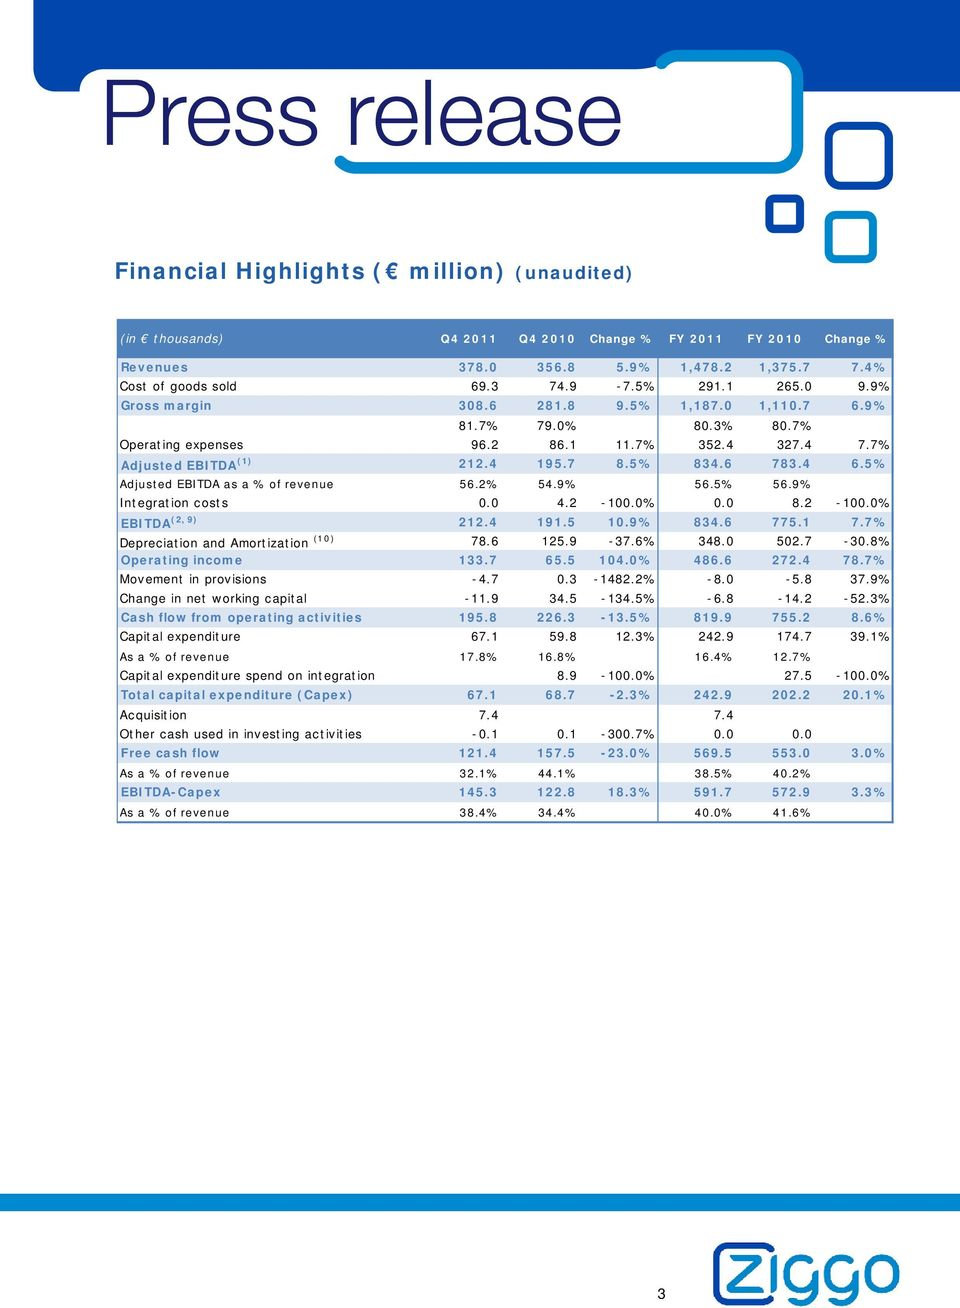 5% Adjusted EBITDA as a % of revenue 56.2% 54.9% 56.5% 56.9% Integration costs 0.0 4.2-100.0% 0.0 8.2-100.0% EBITDA (2, 9) 212.4 191.5 10.9% 834.6 775.1 7.7% Depreciation and Amortization (10) 78.